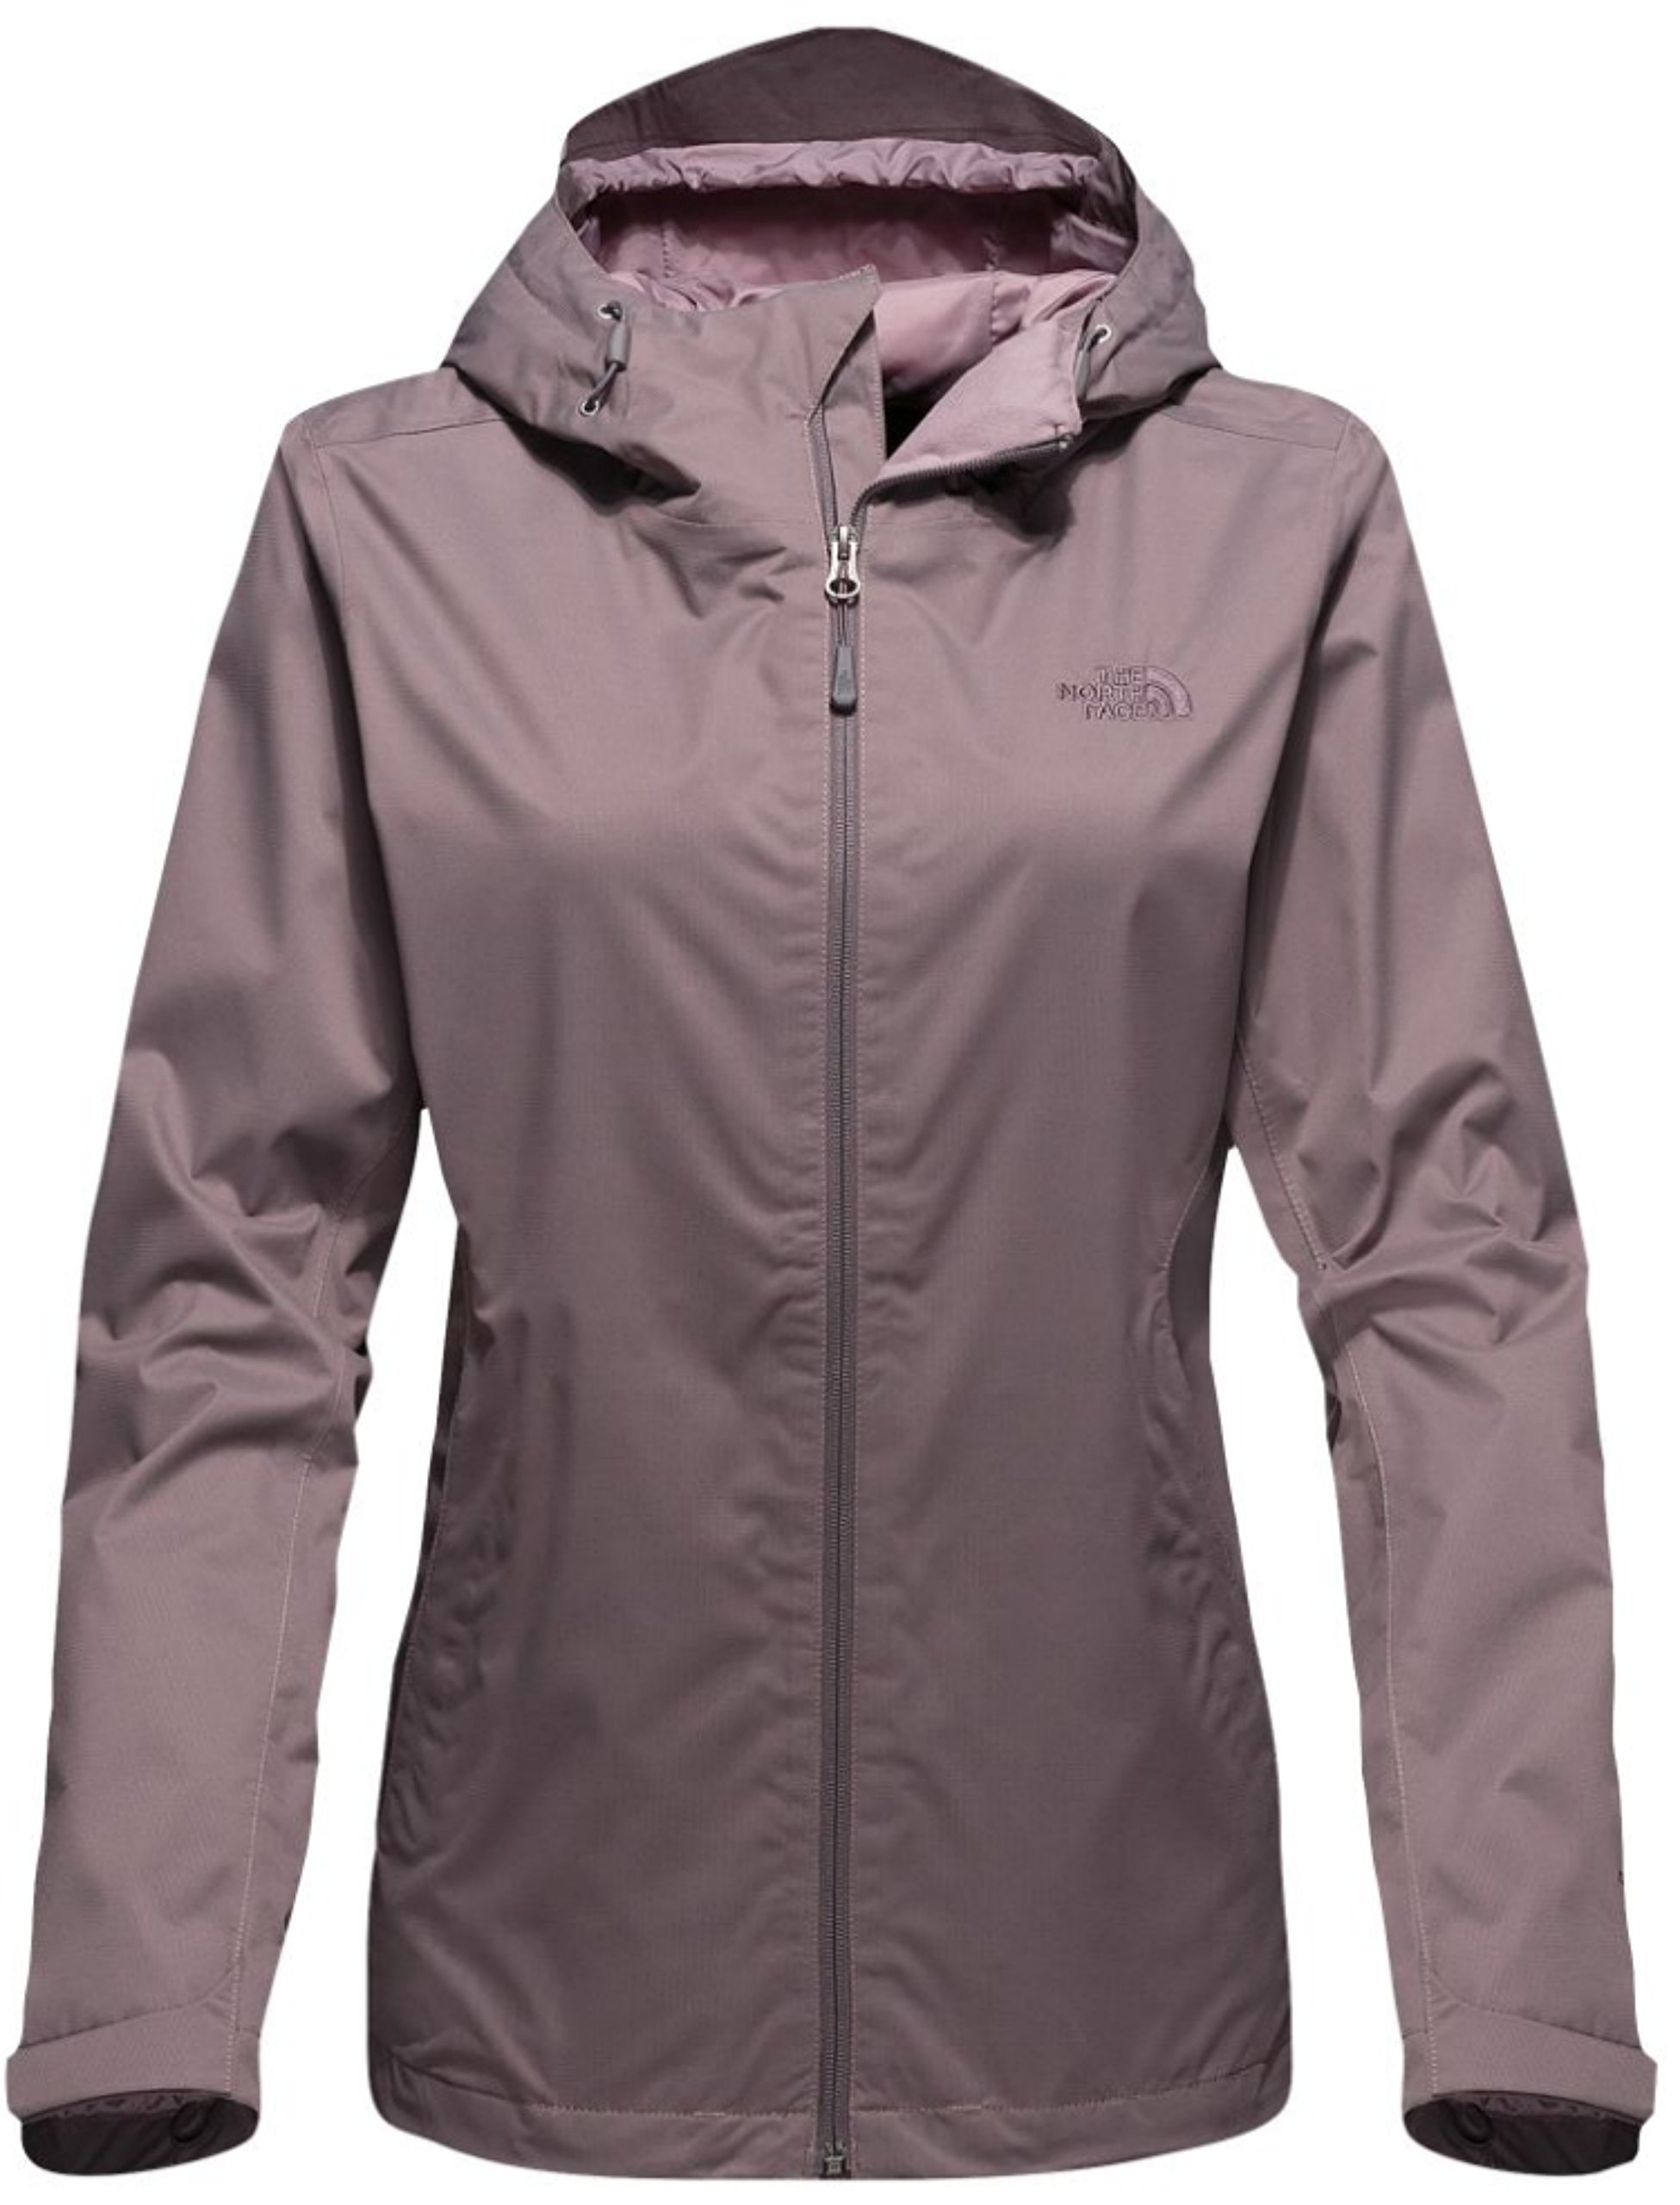 The North Face Women's Arrowood Triclimate Jacket (L) by The North Face